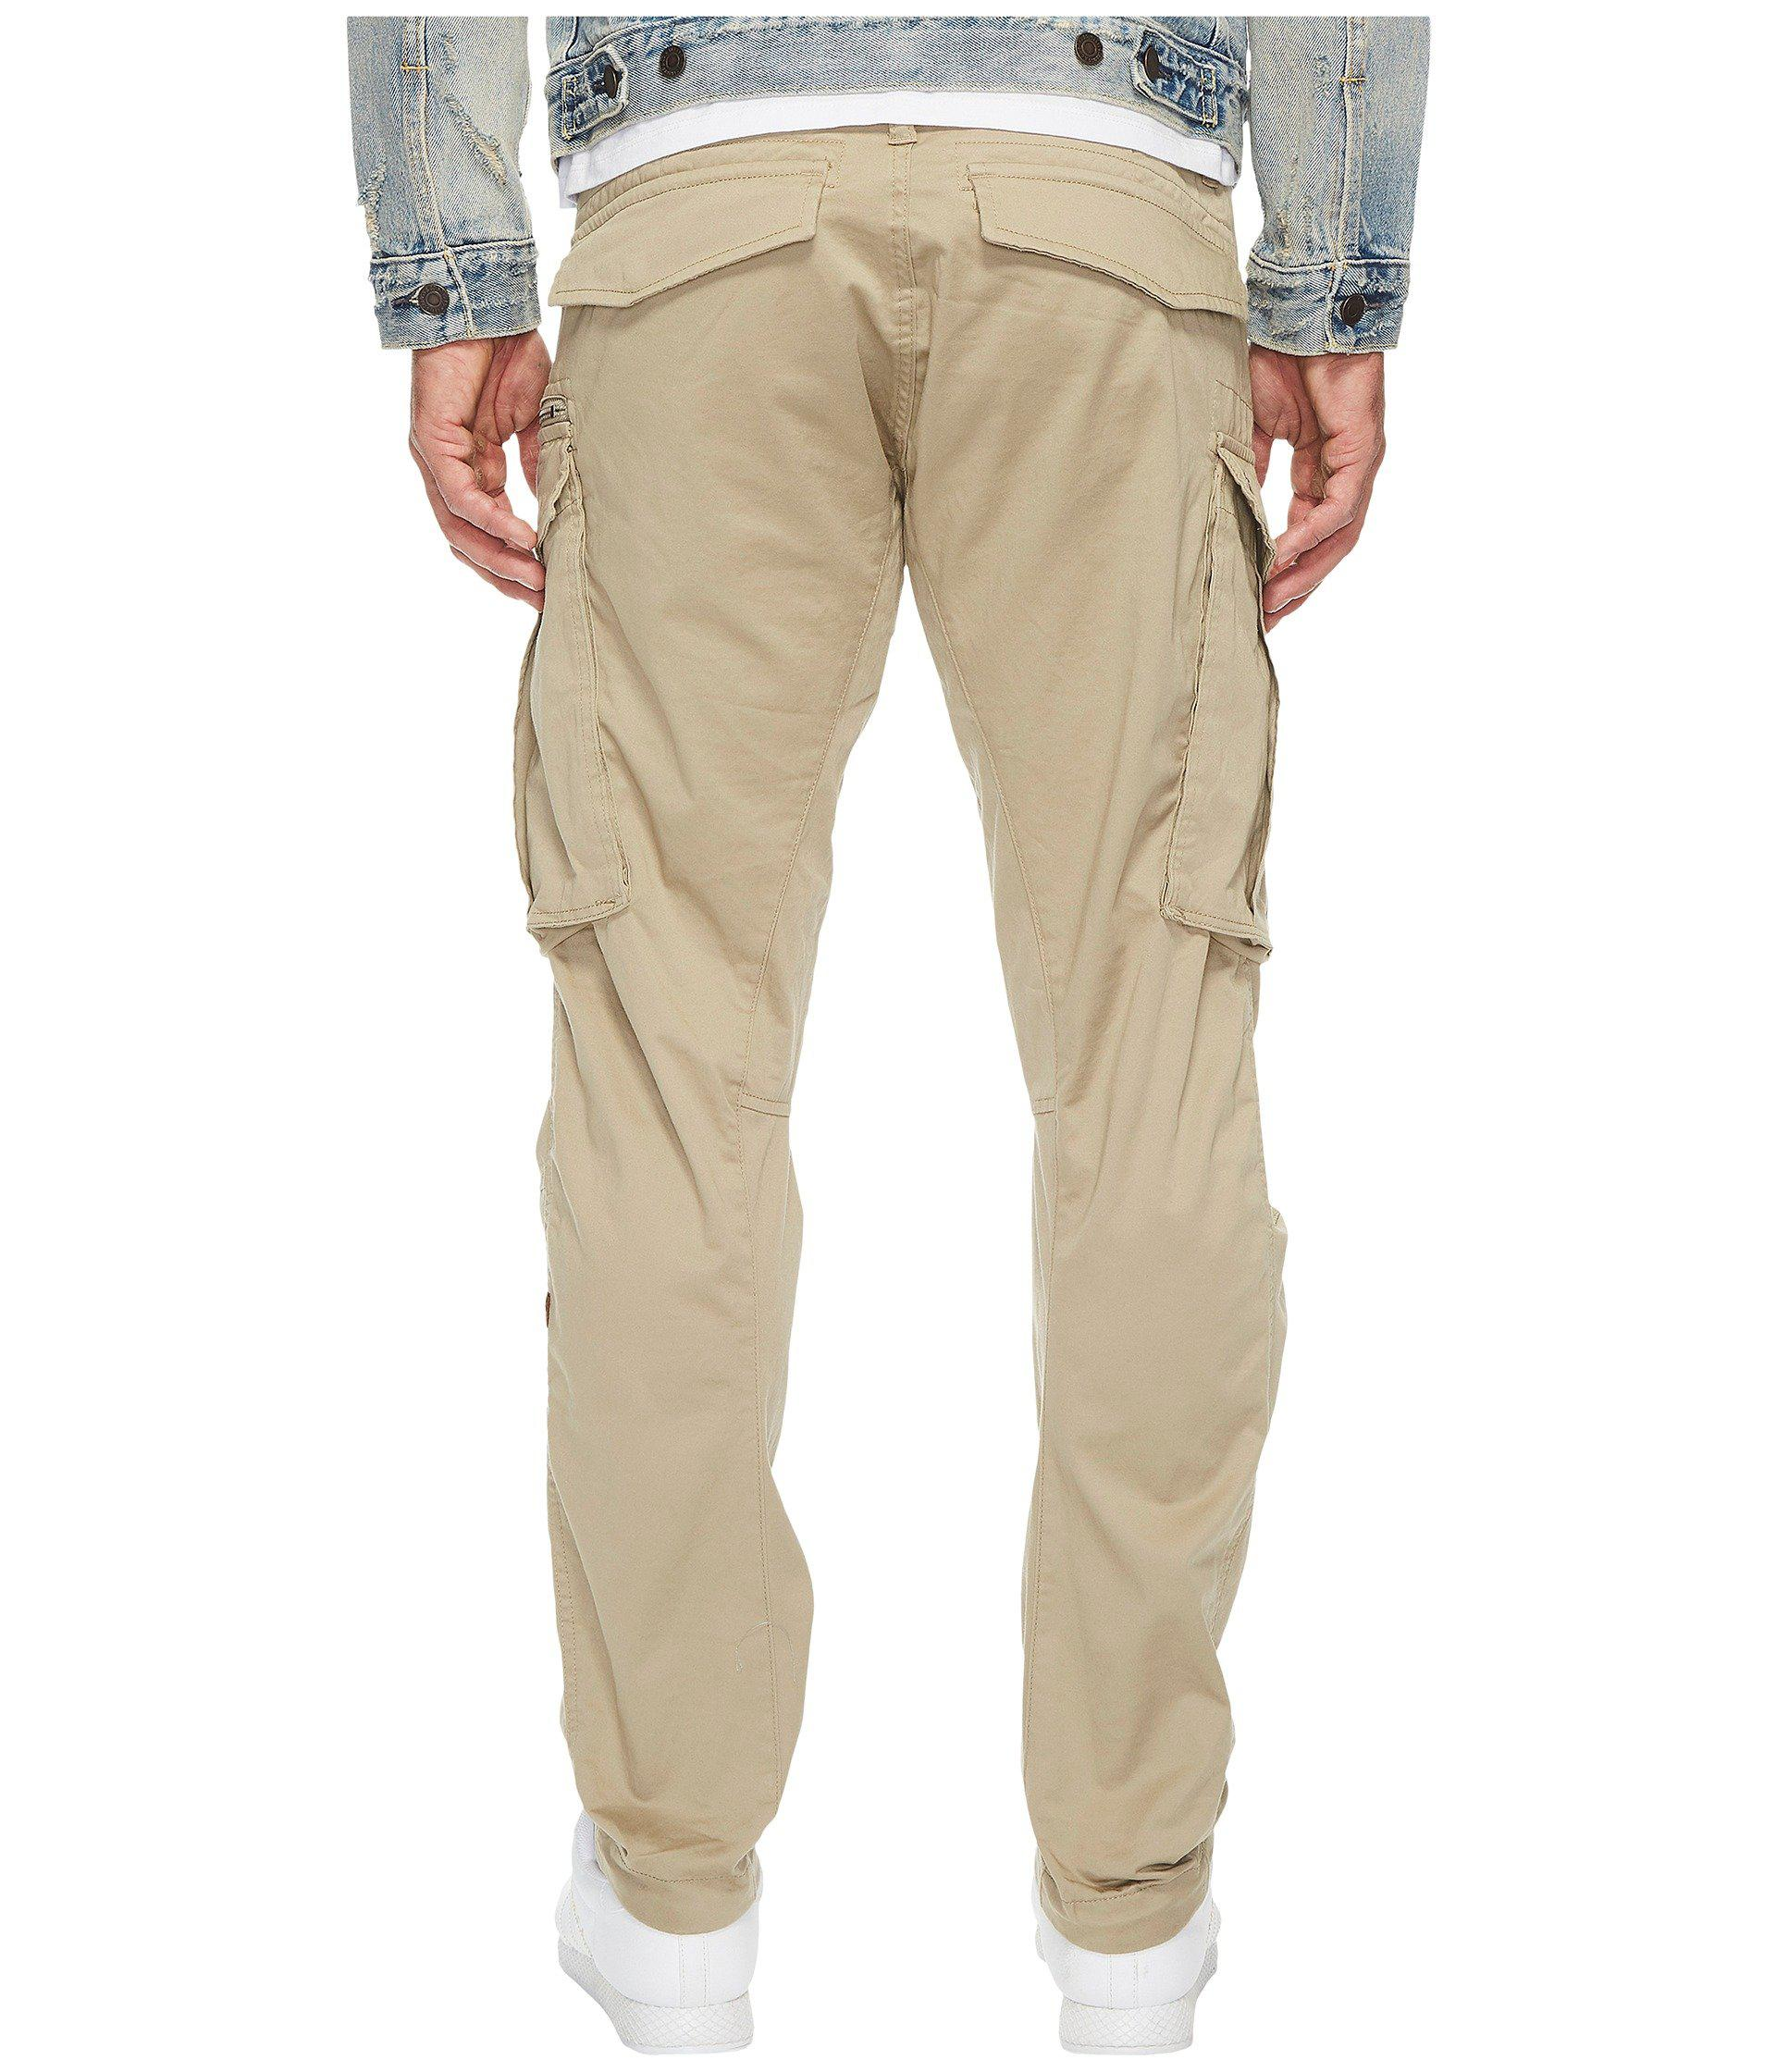 95ff600335f G-Star RAW Rovic Zip 3d Tapered Fit Pants In Premium Micro Stretch ...